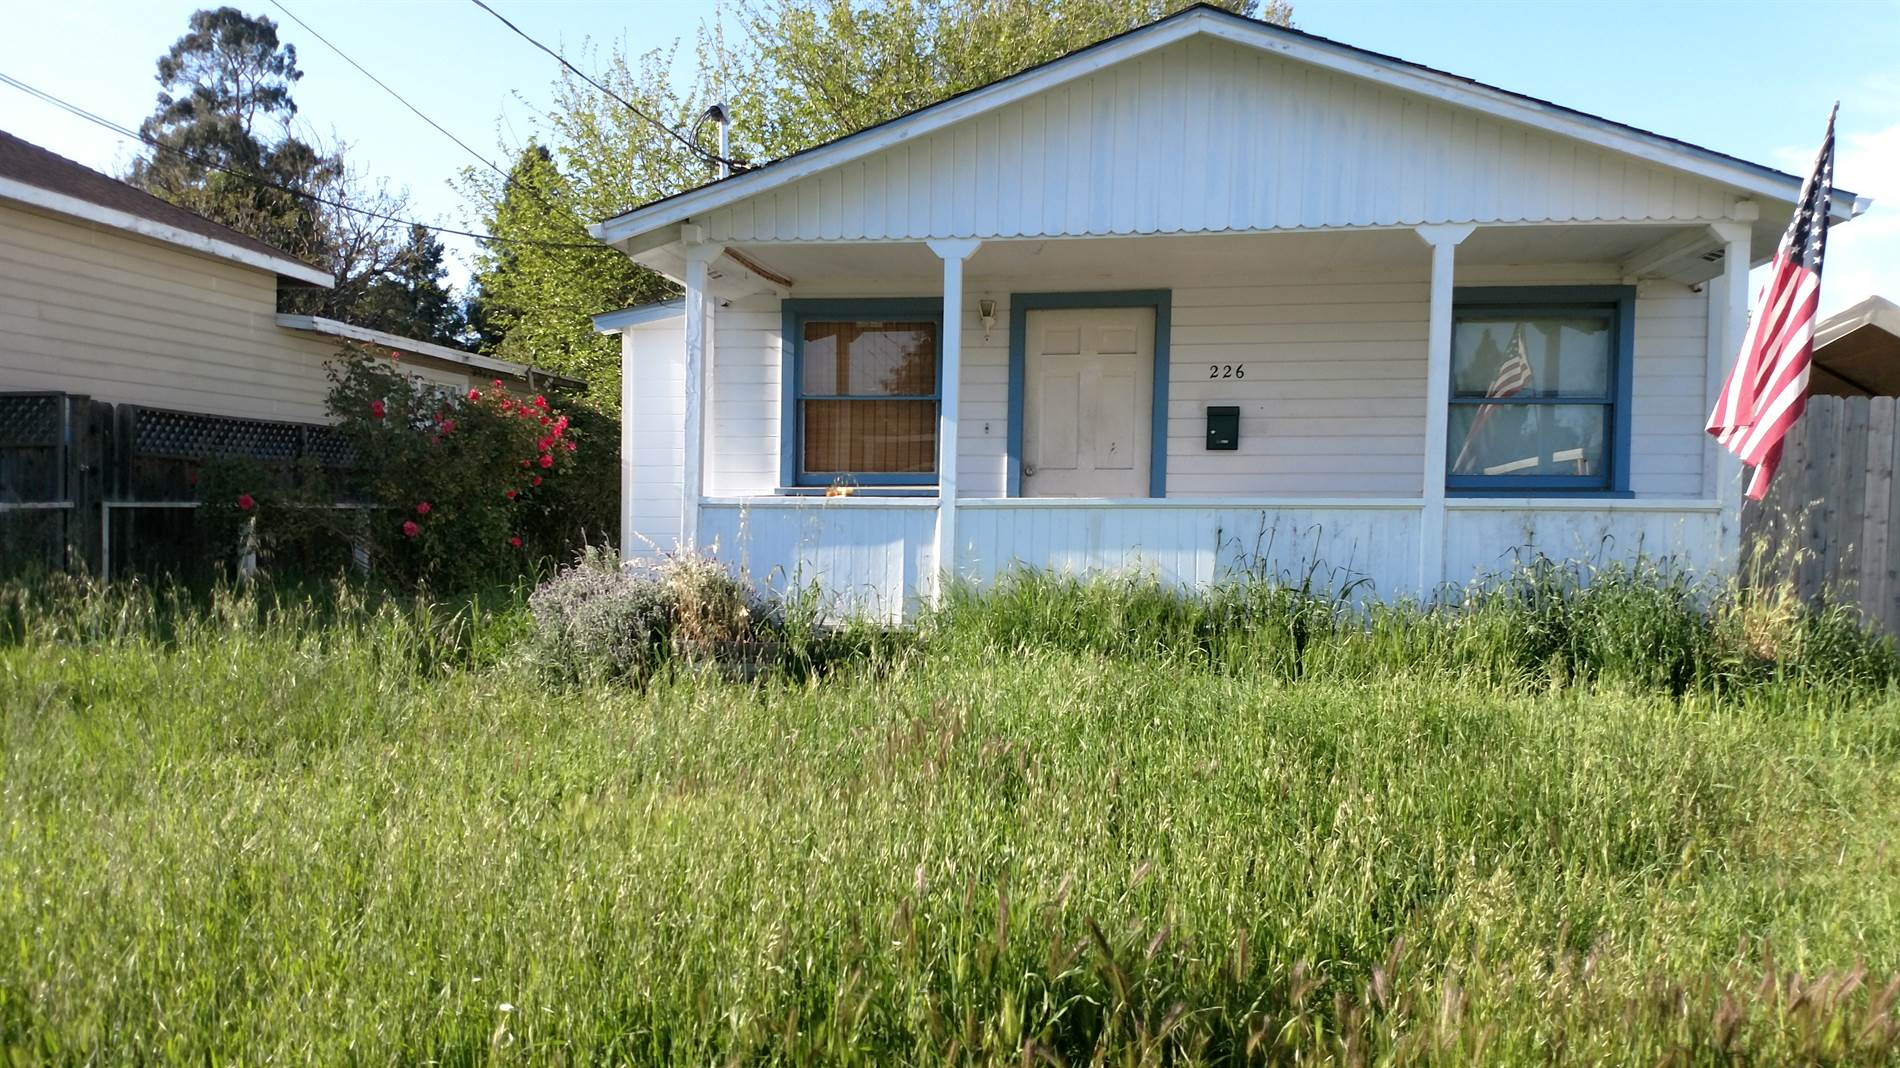 Photo of 226 Norton Street  Ukiah  CA